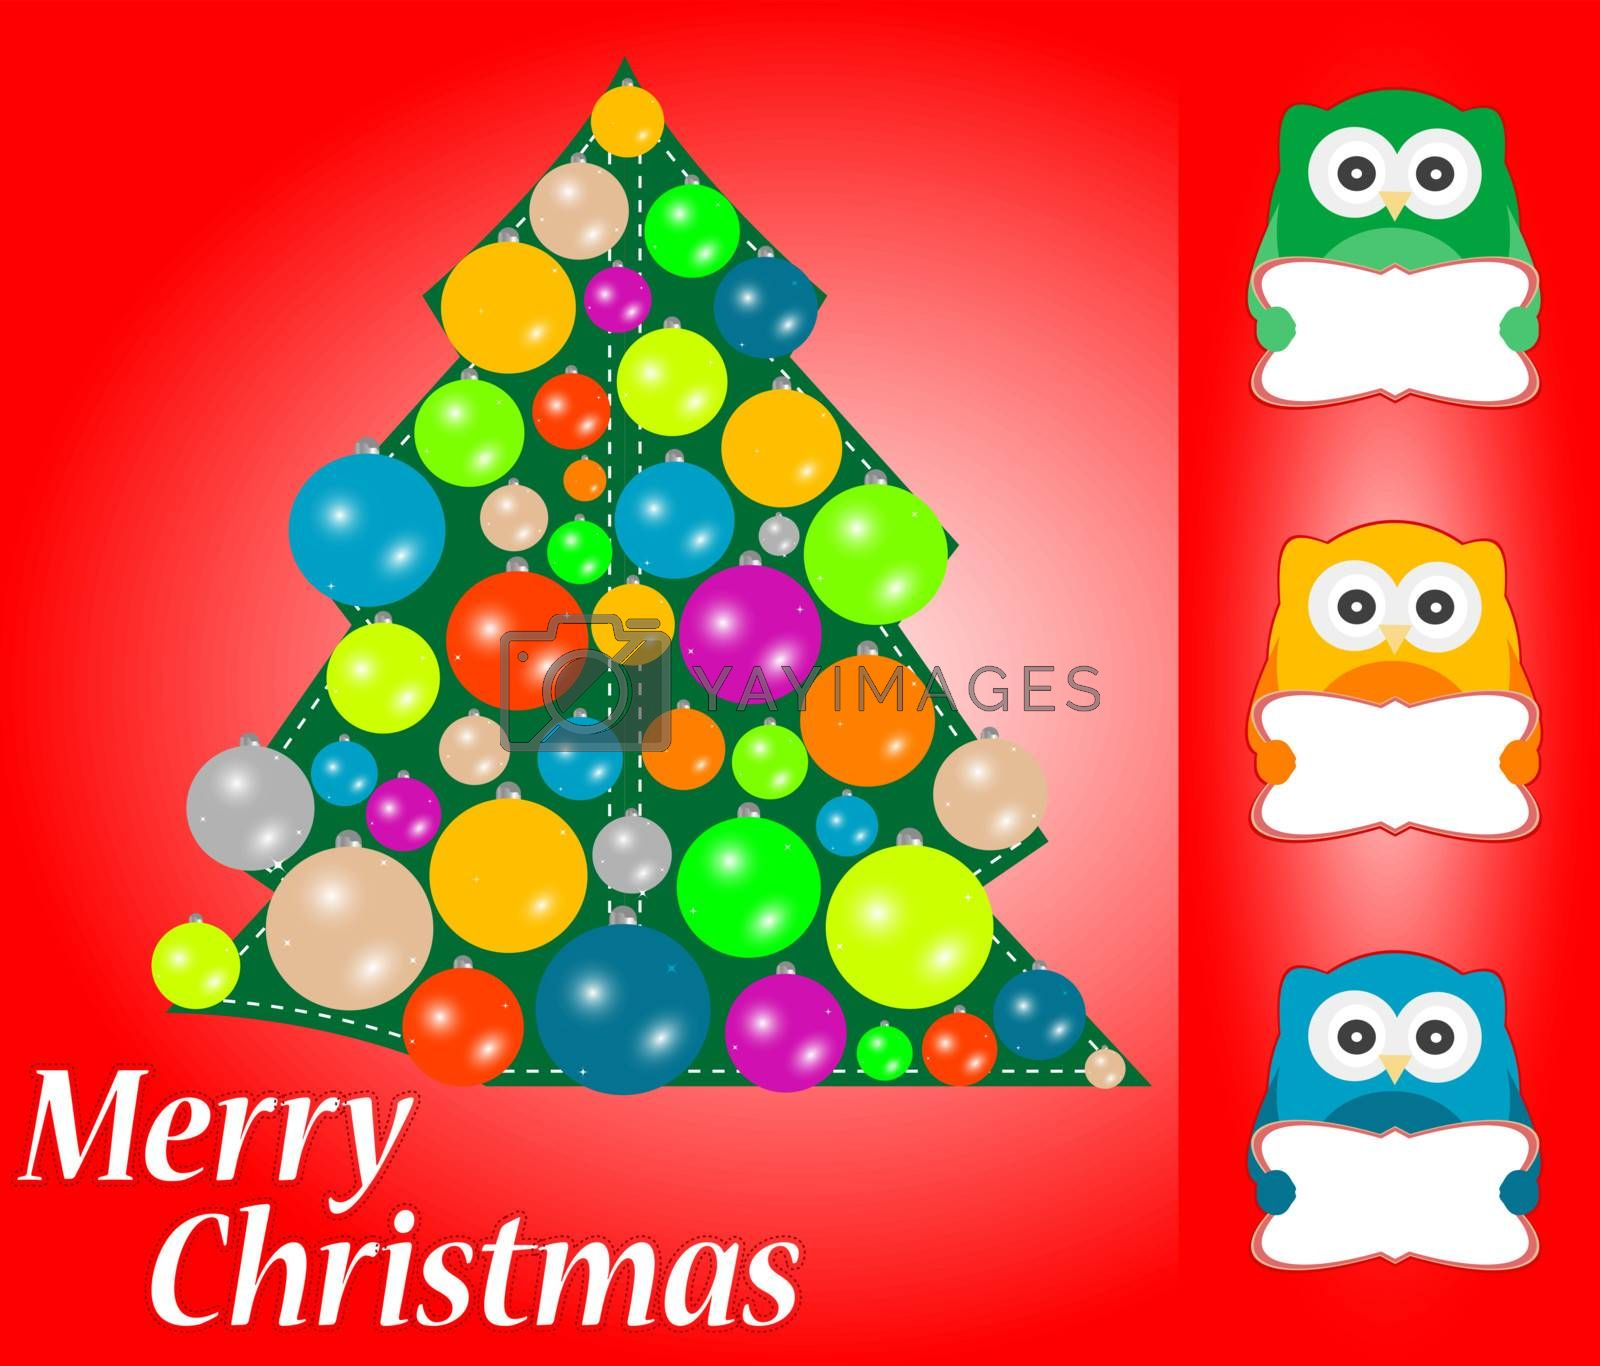 Merry Christmas greeting card with cute owls. Vector background